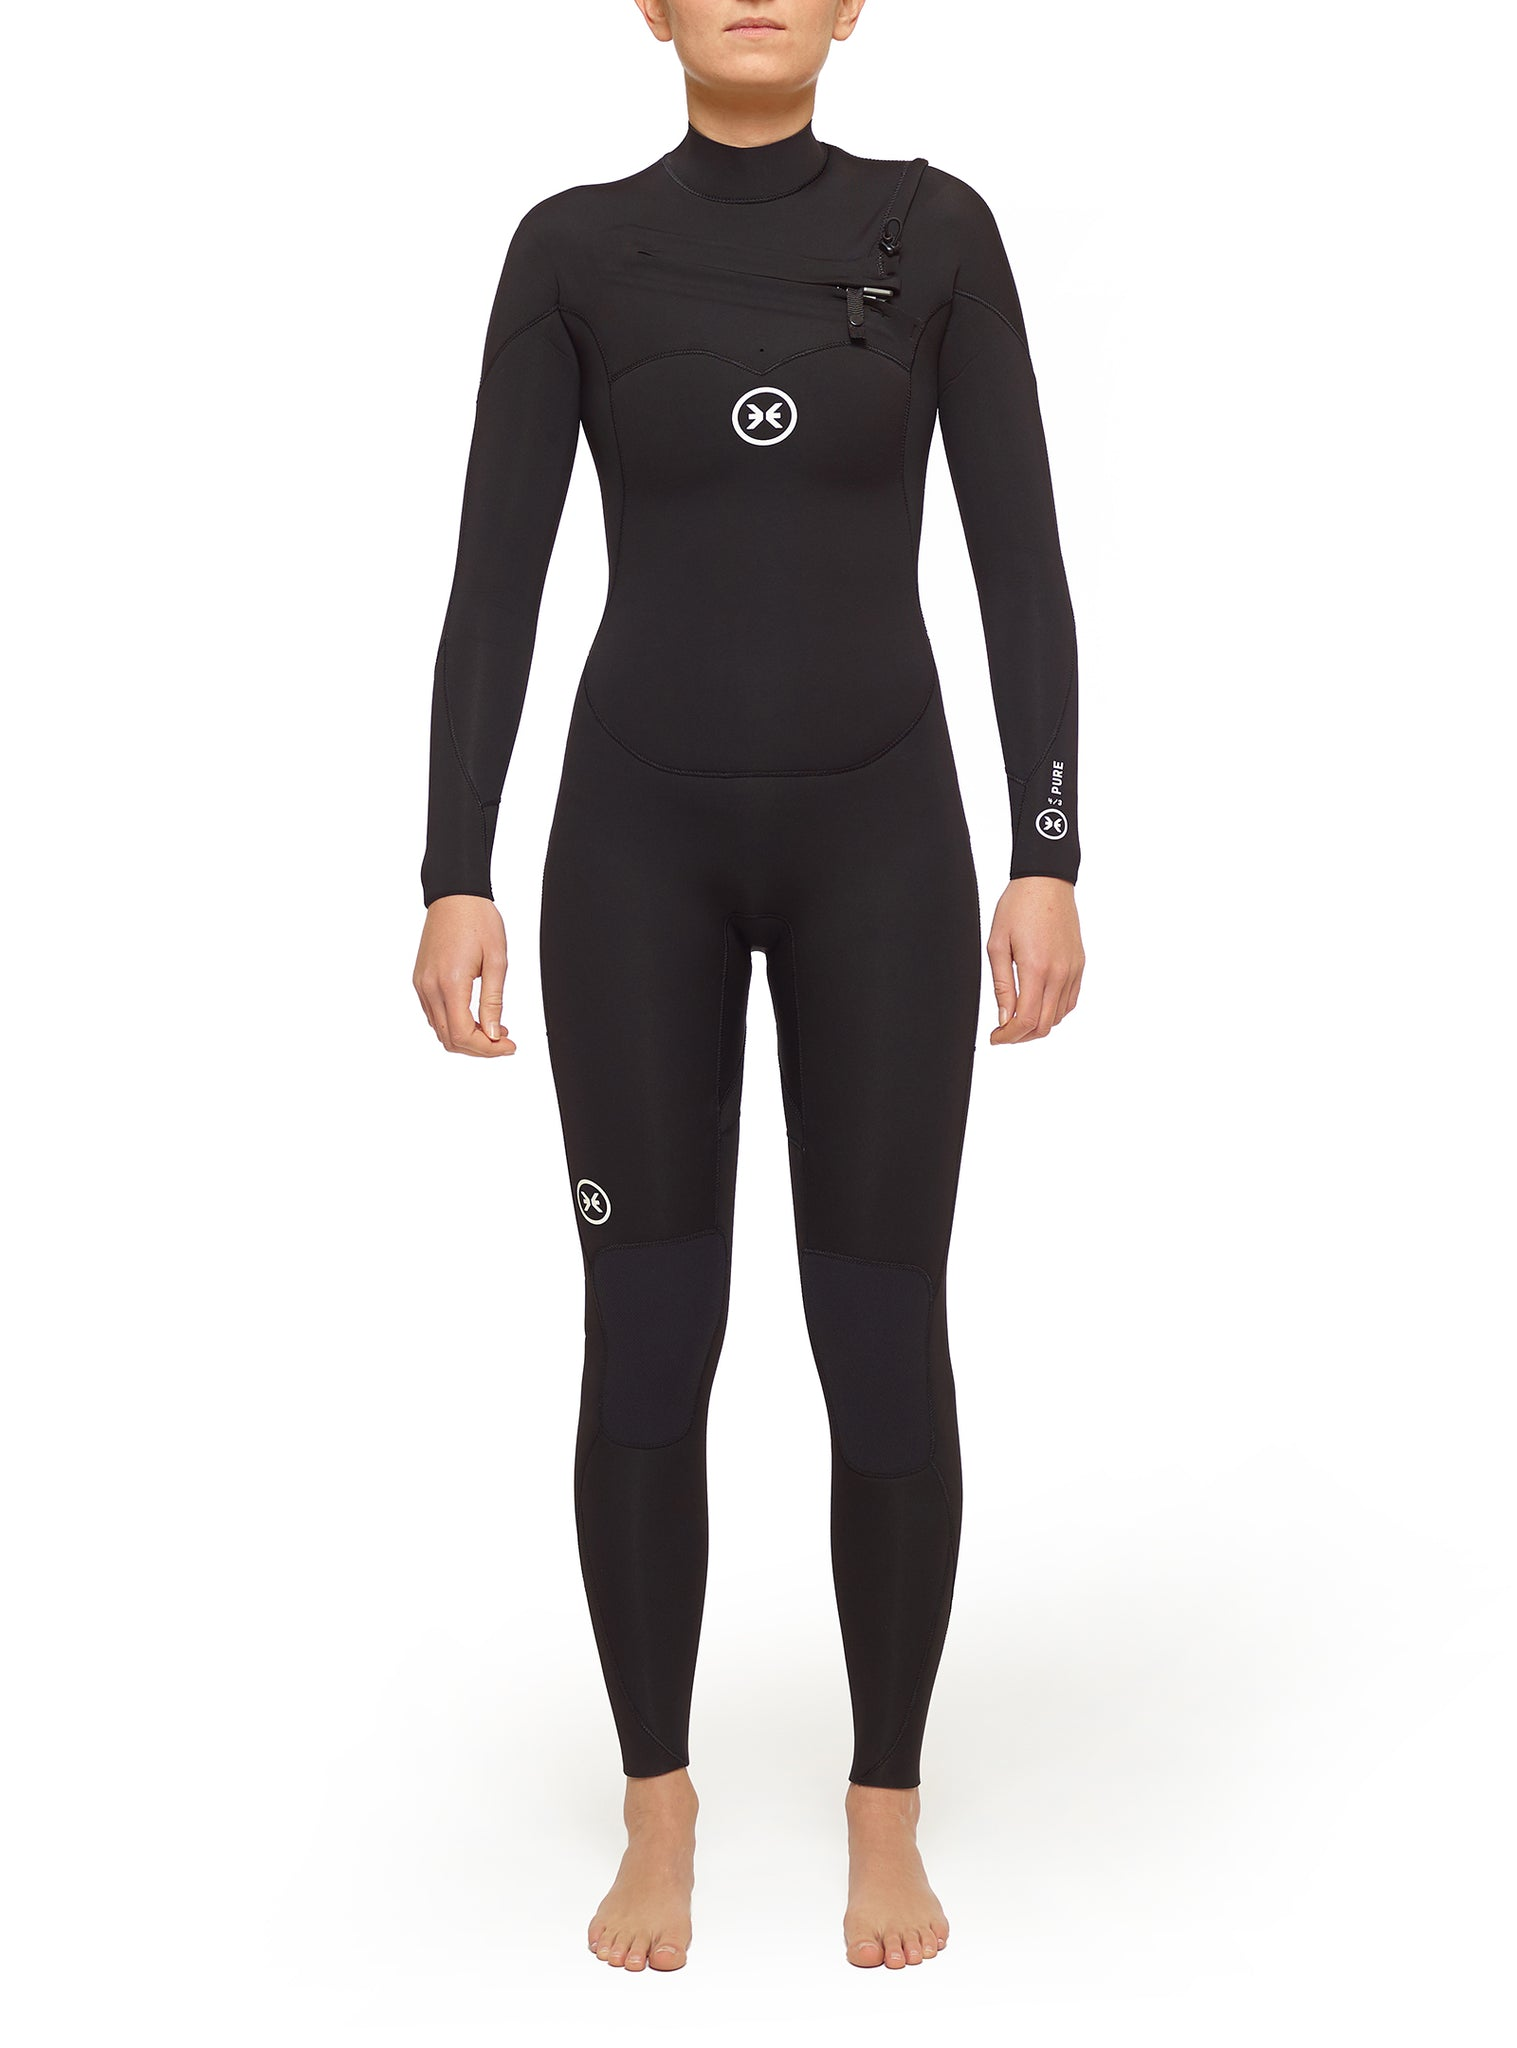 Wetsuit Woman Pure 4/3 Chest Zip Black